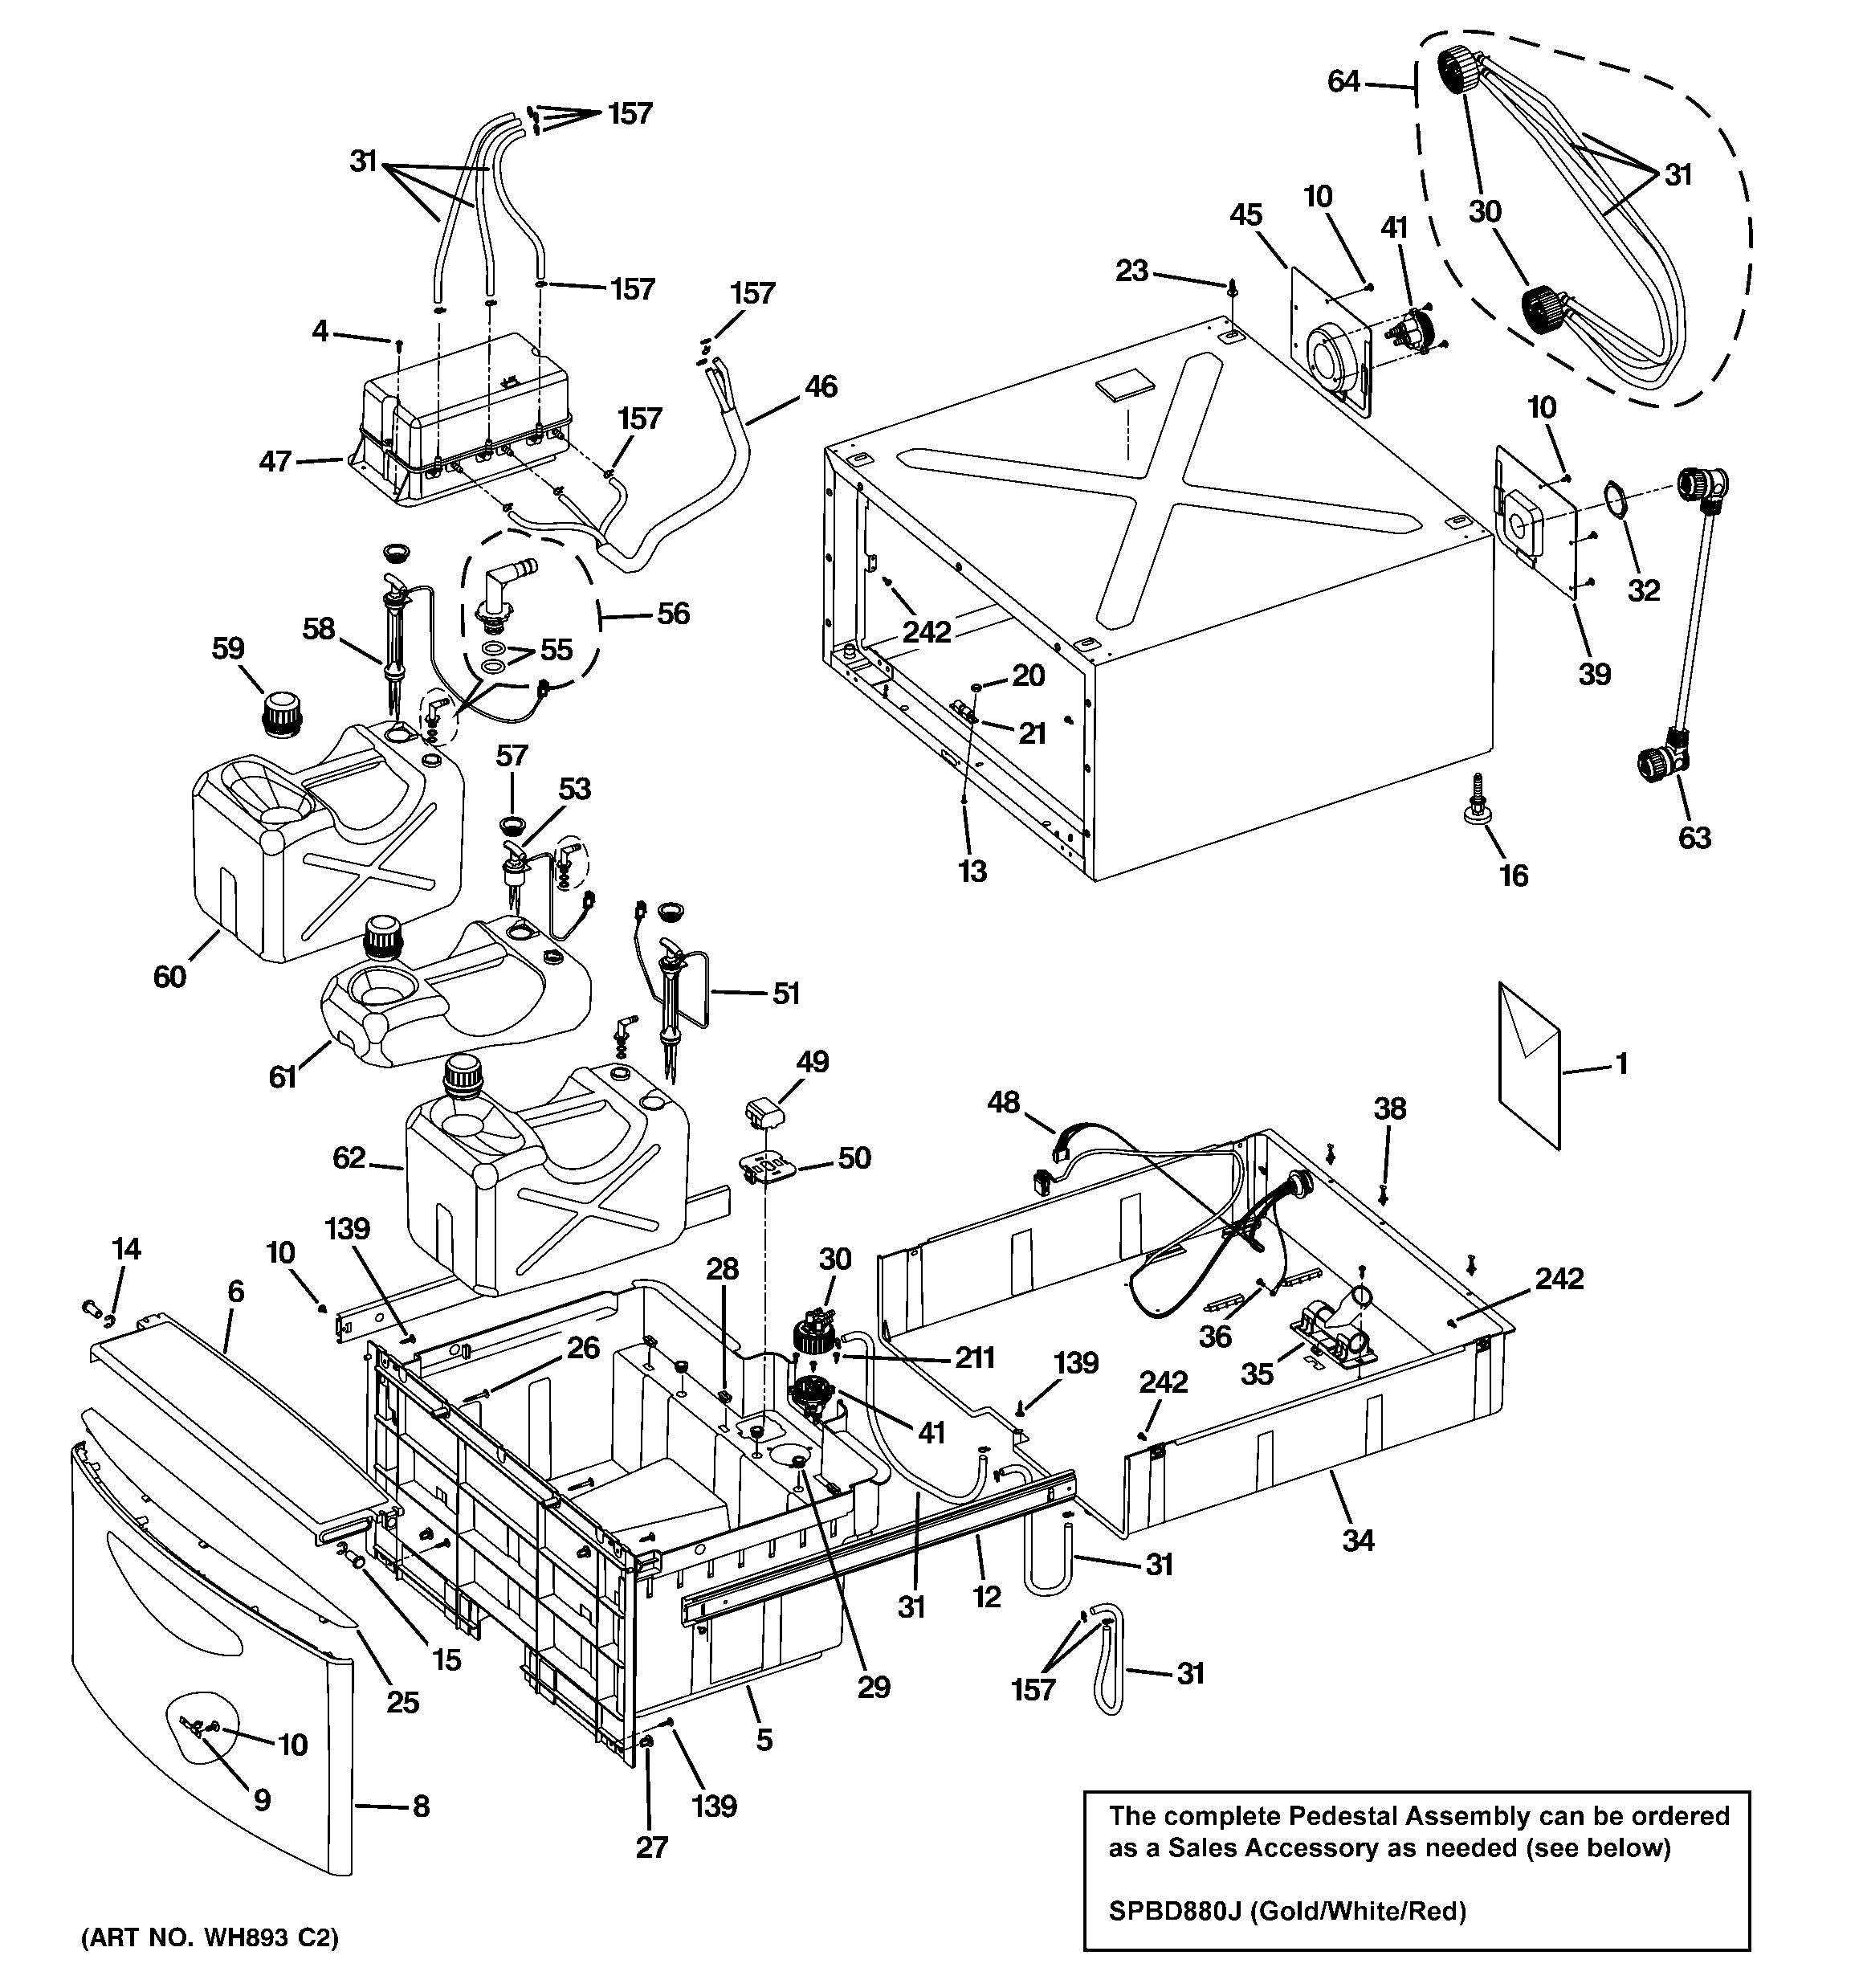 daisy 880 parts diagram 97 honda civic engine pin image search results on pinterest